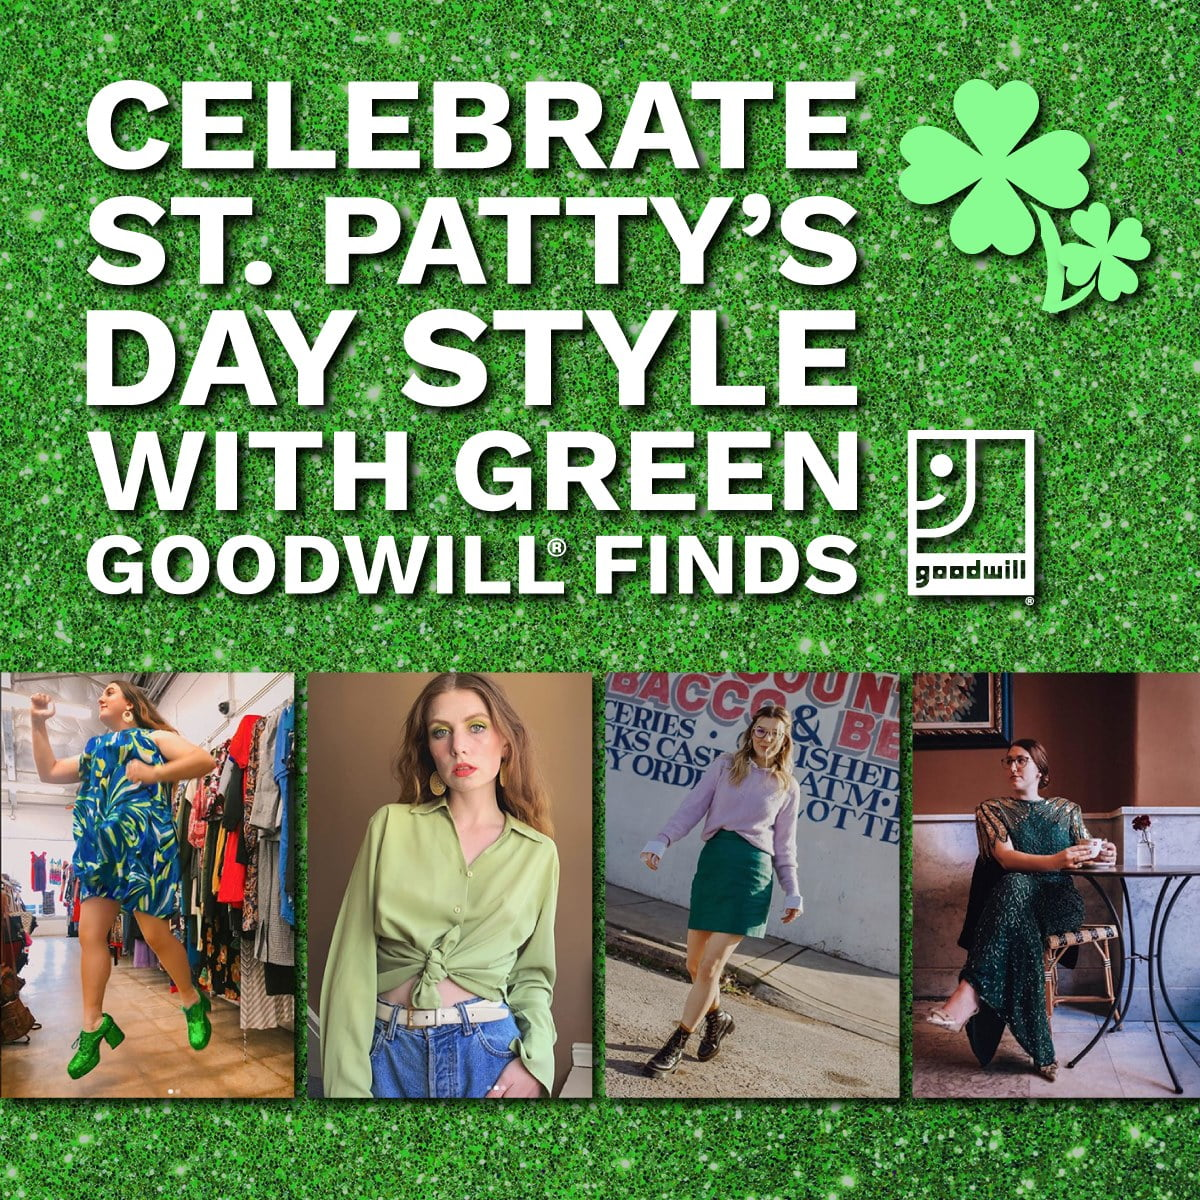 st patty's day blog